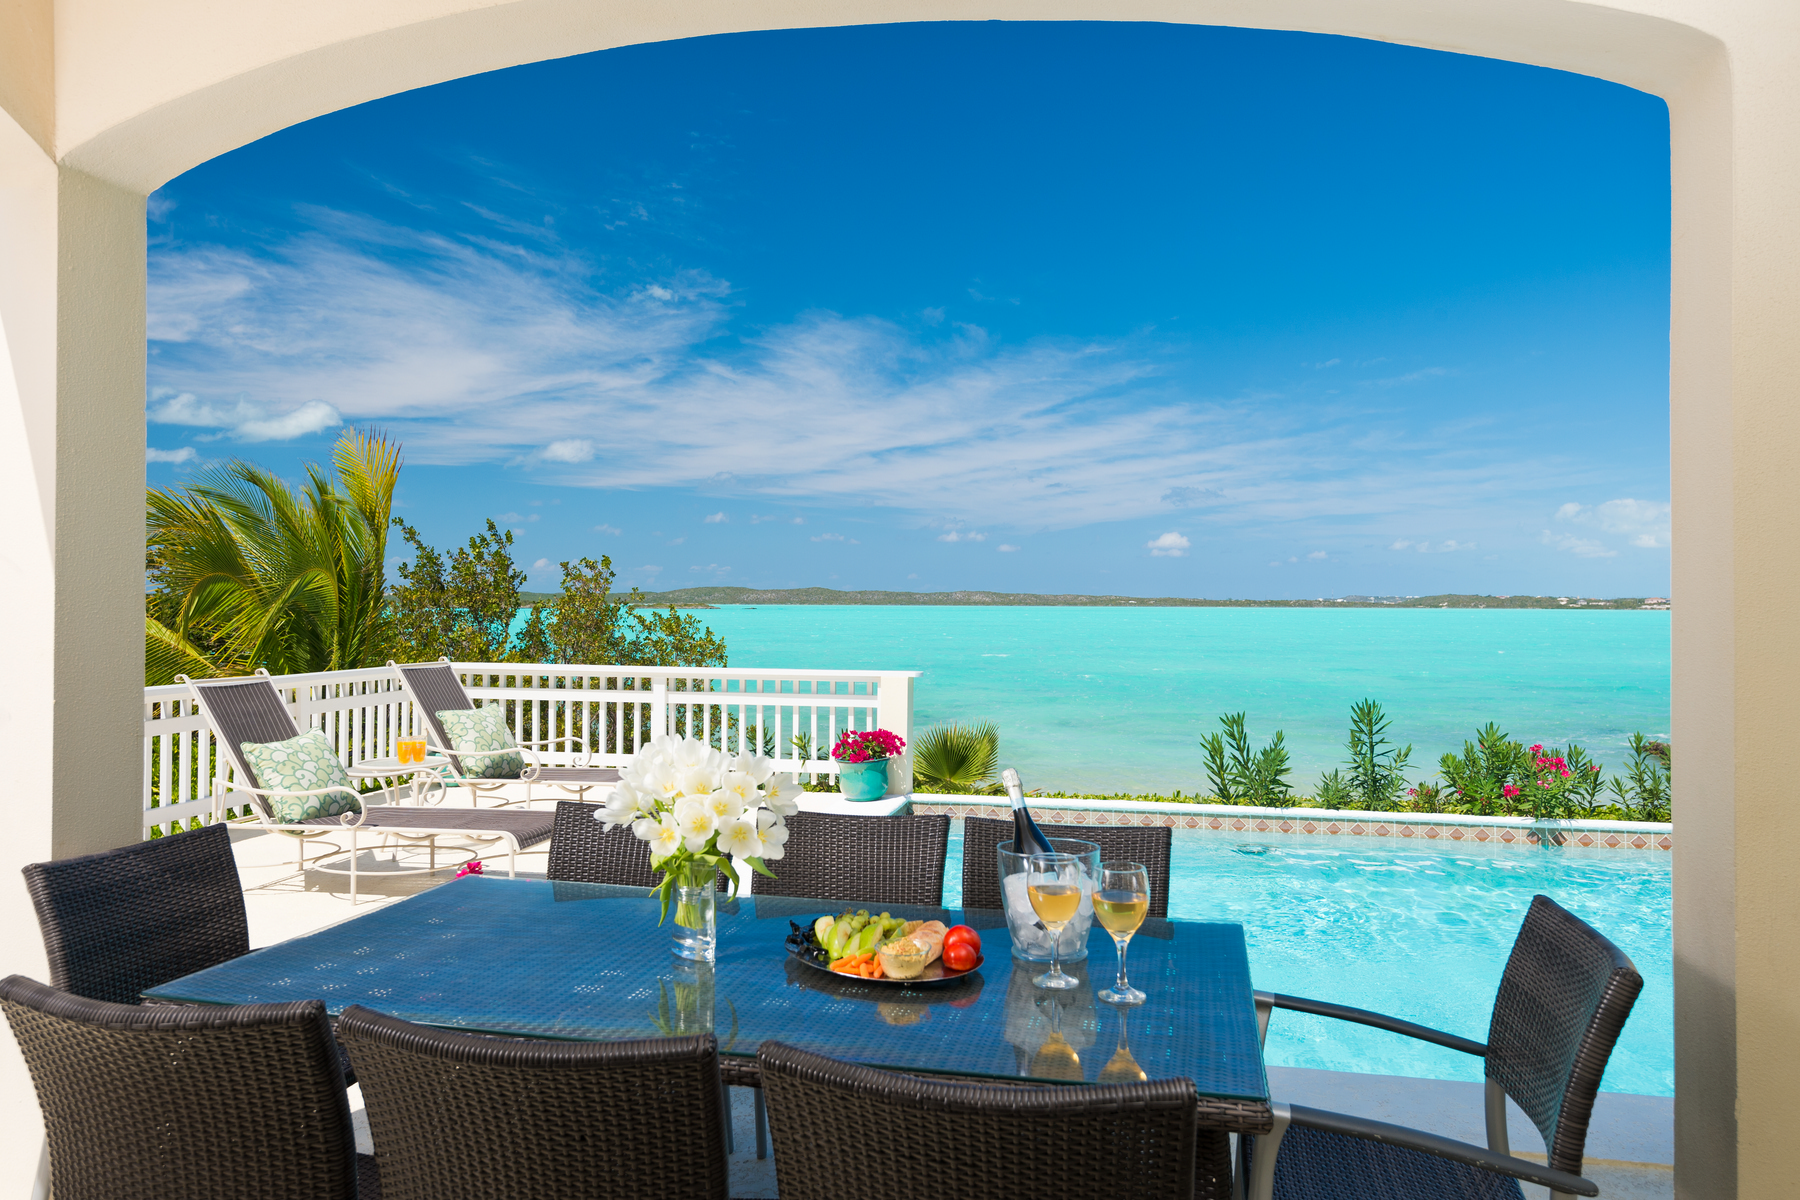 Single Family Home for Sale at BRIGHT IDEA VILLA Oceanfront Chalk Sound, TKCA 1ZZ Turks And Caicos Islands